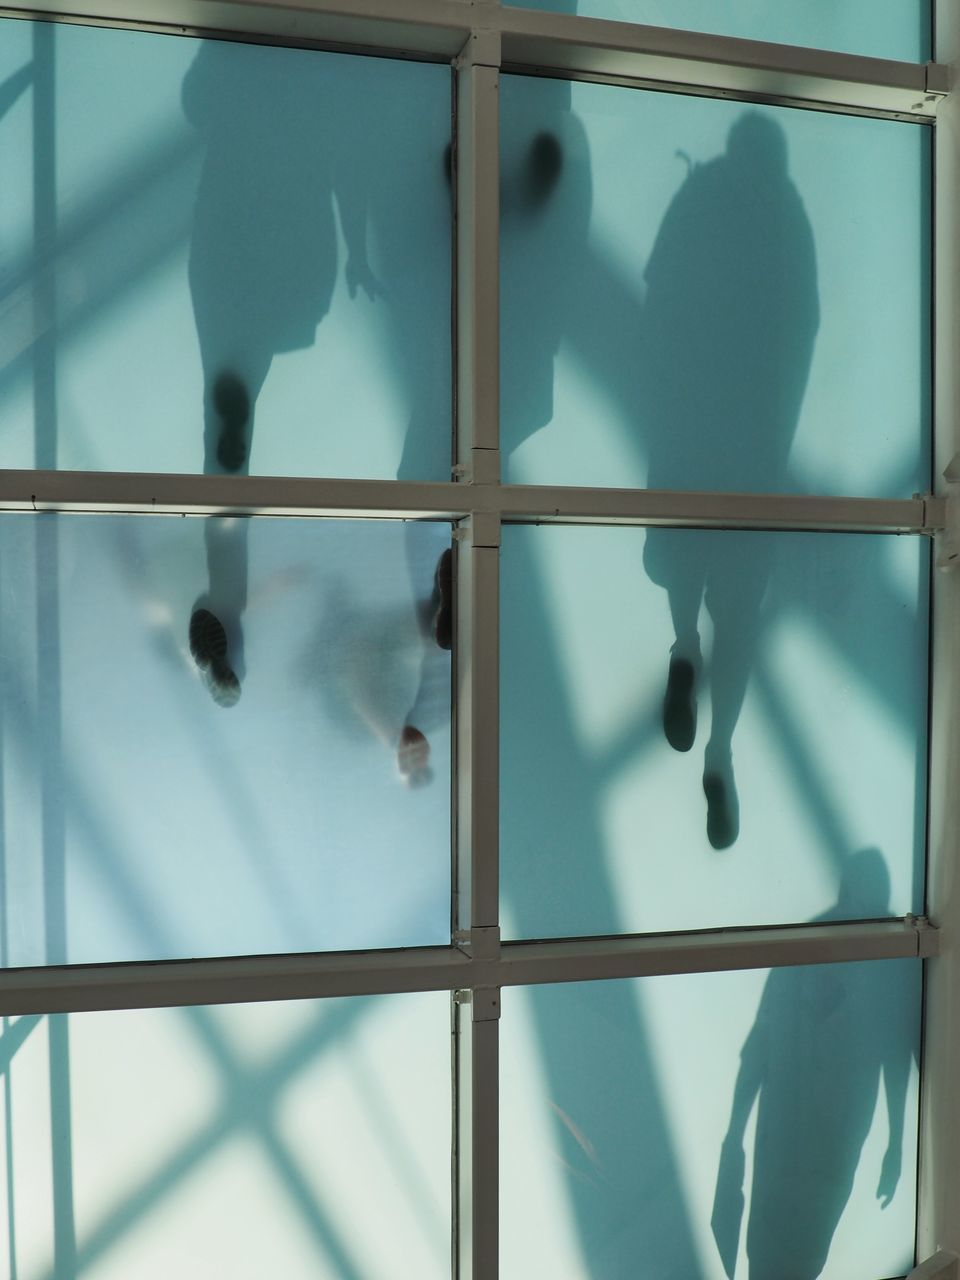 indoors, window, shadow, day, close-up, no people